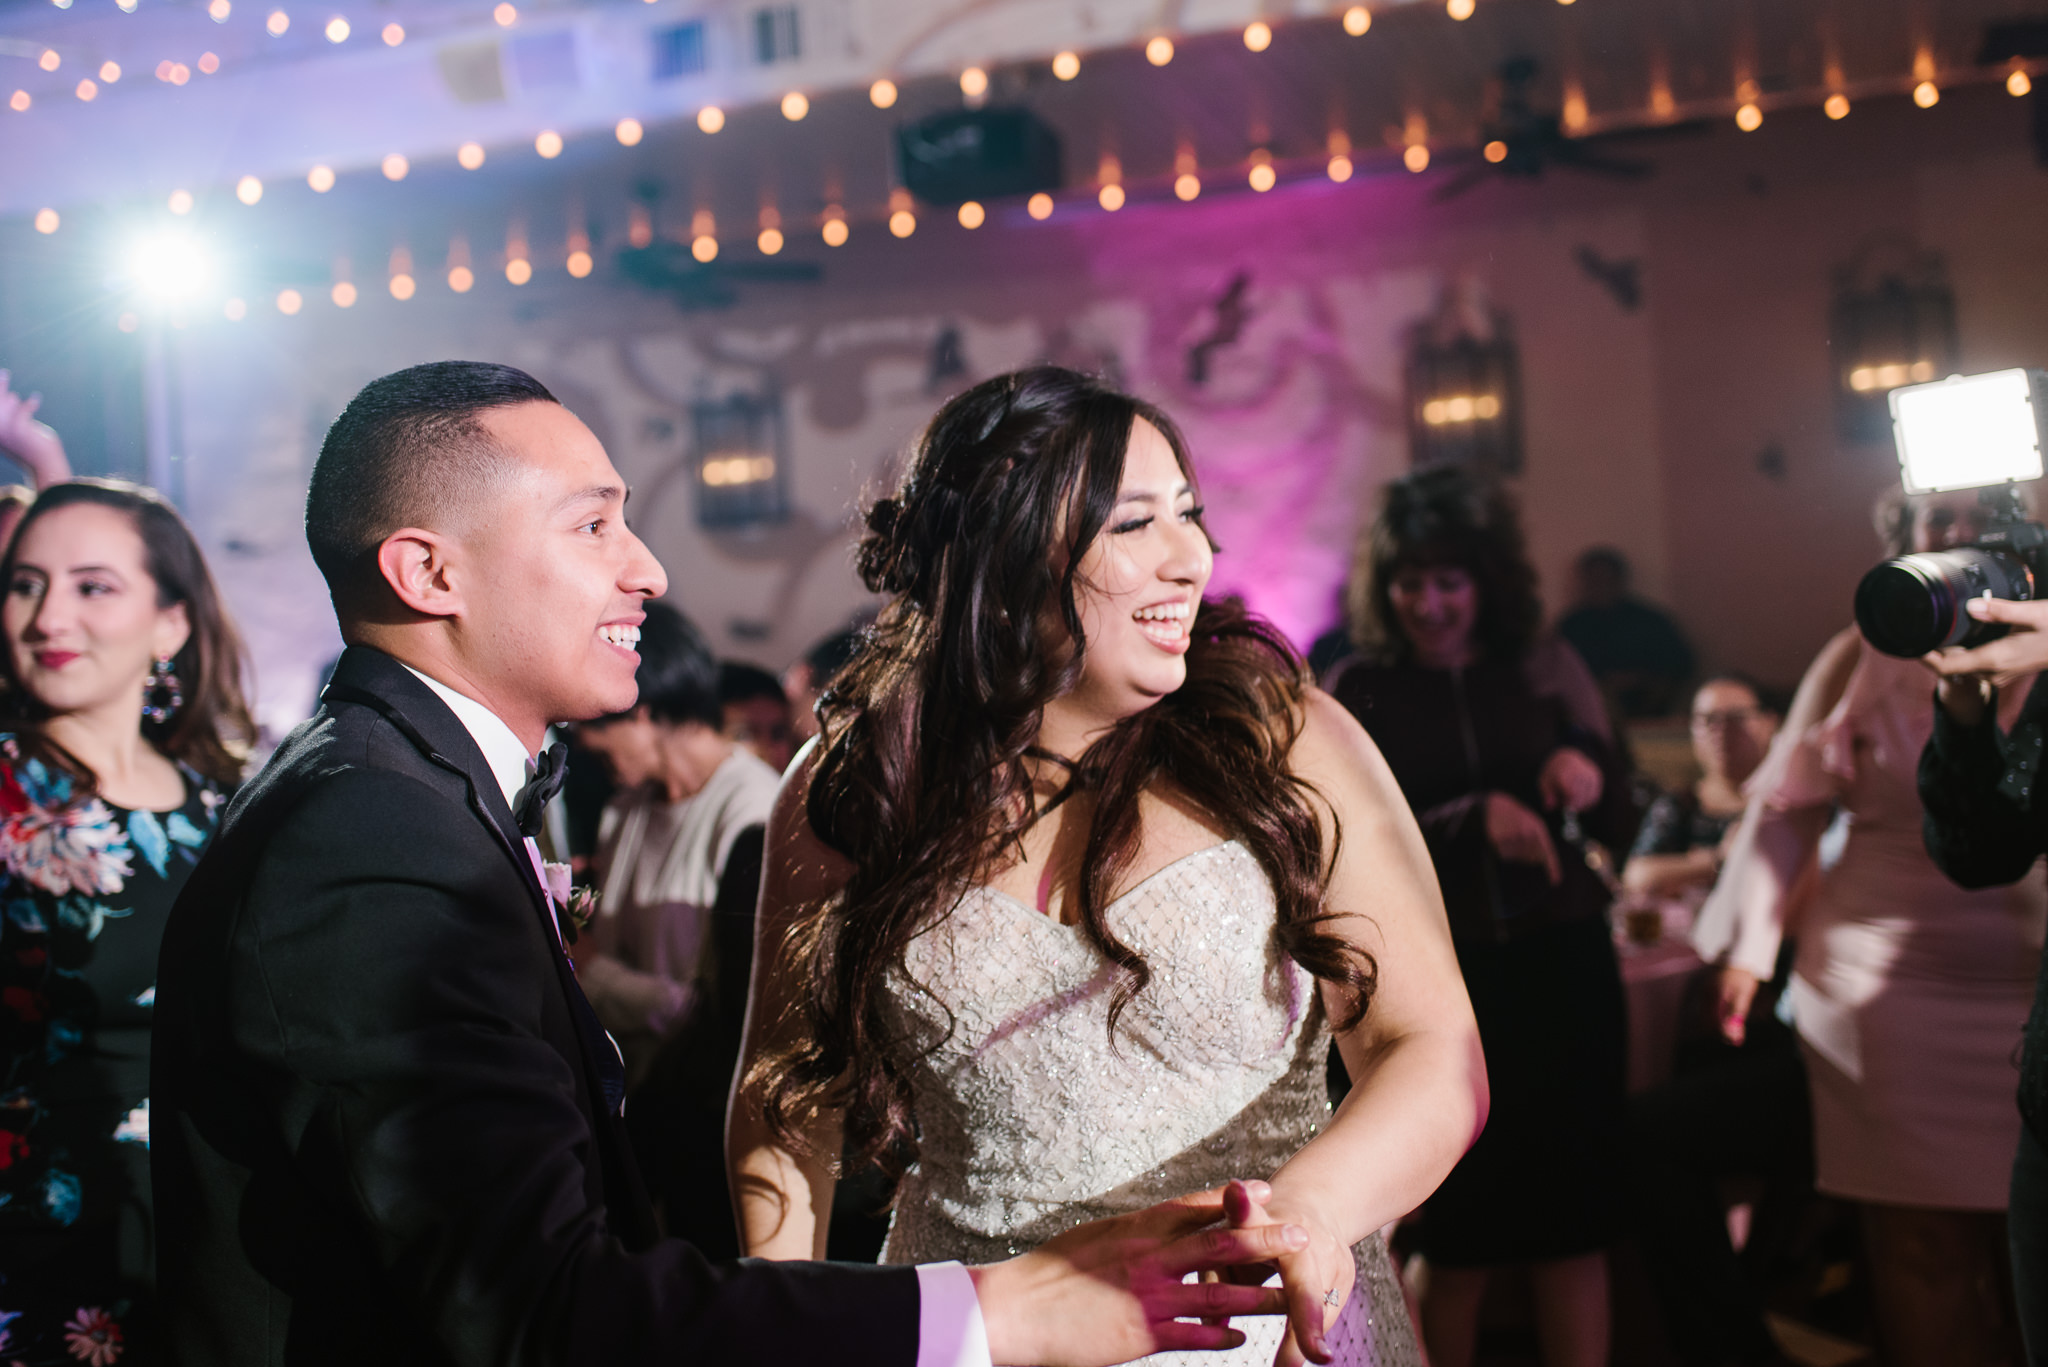 2019-04-05_Brittany_and_Nick_-_Married_-_San_Juan_Capistrano-145.jpg